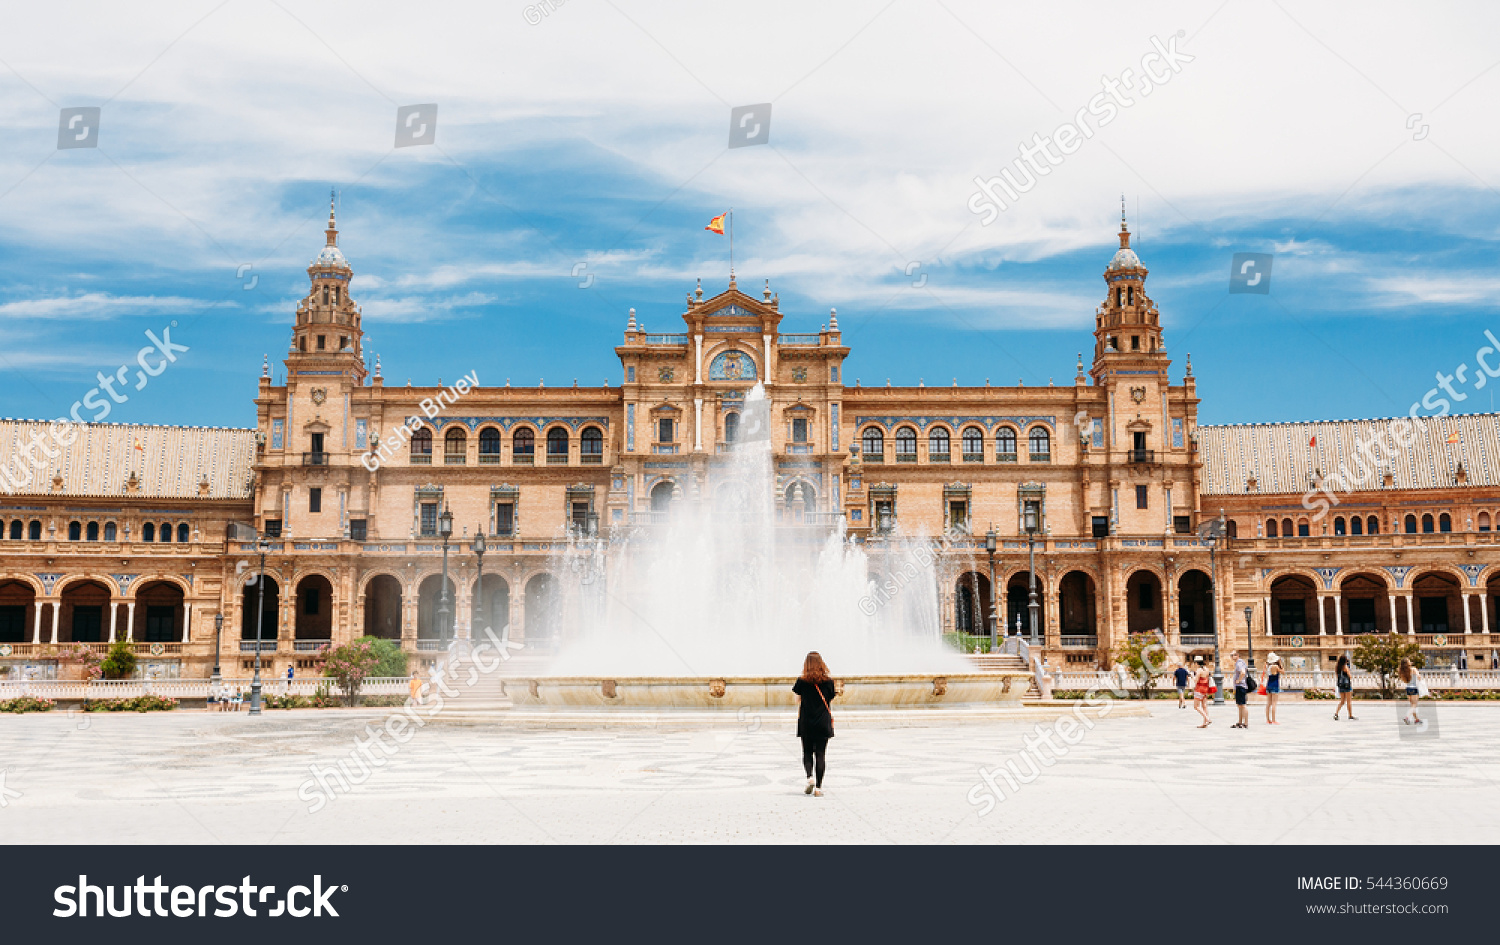 Sightseeing Place In Seville And Food